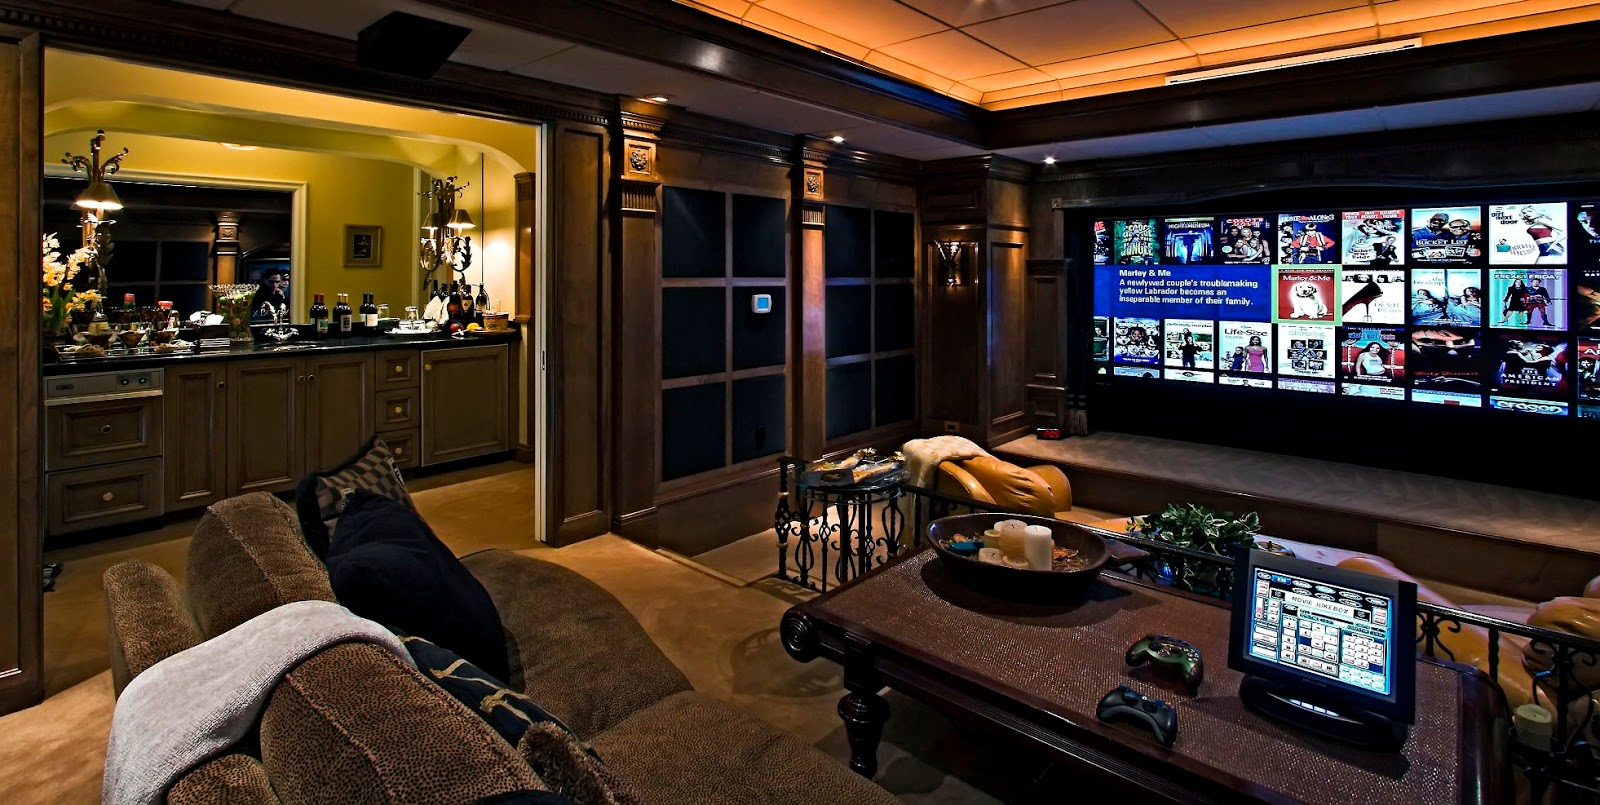 Designing & Building a Home Theater #3 – Creating A Home Theater System To Be Used in a Medium Shared Environment